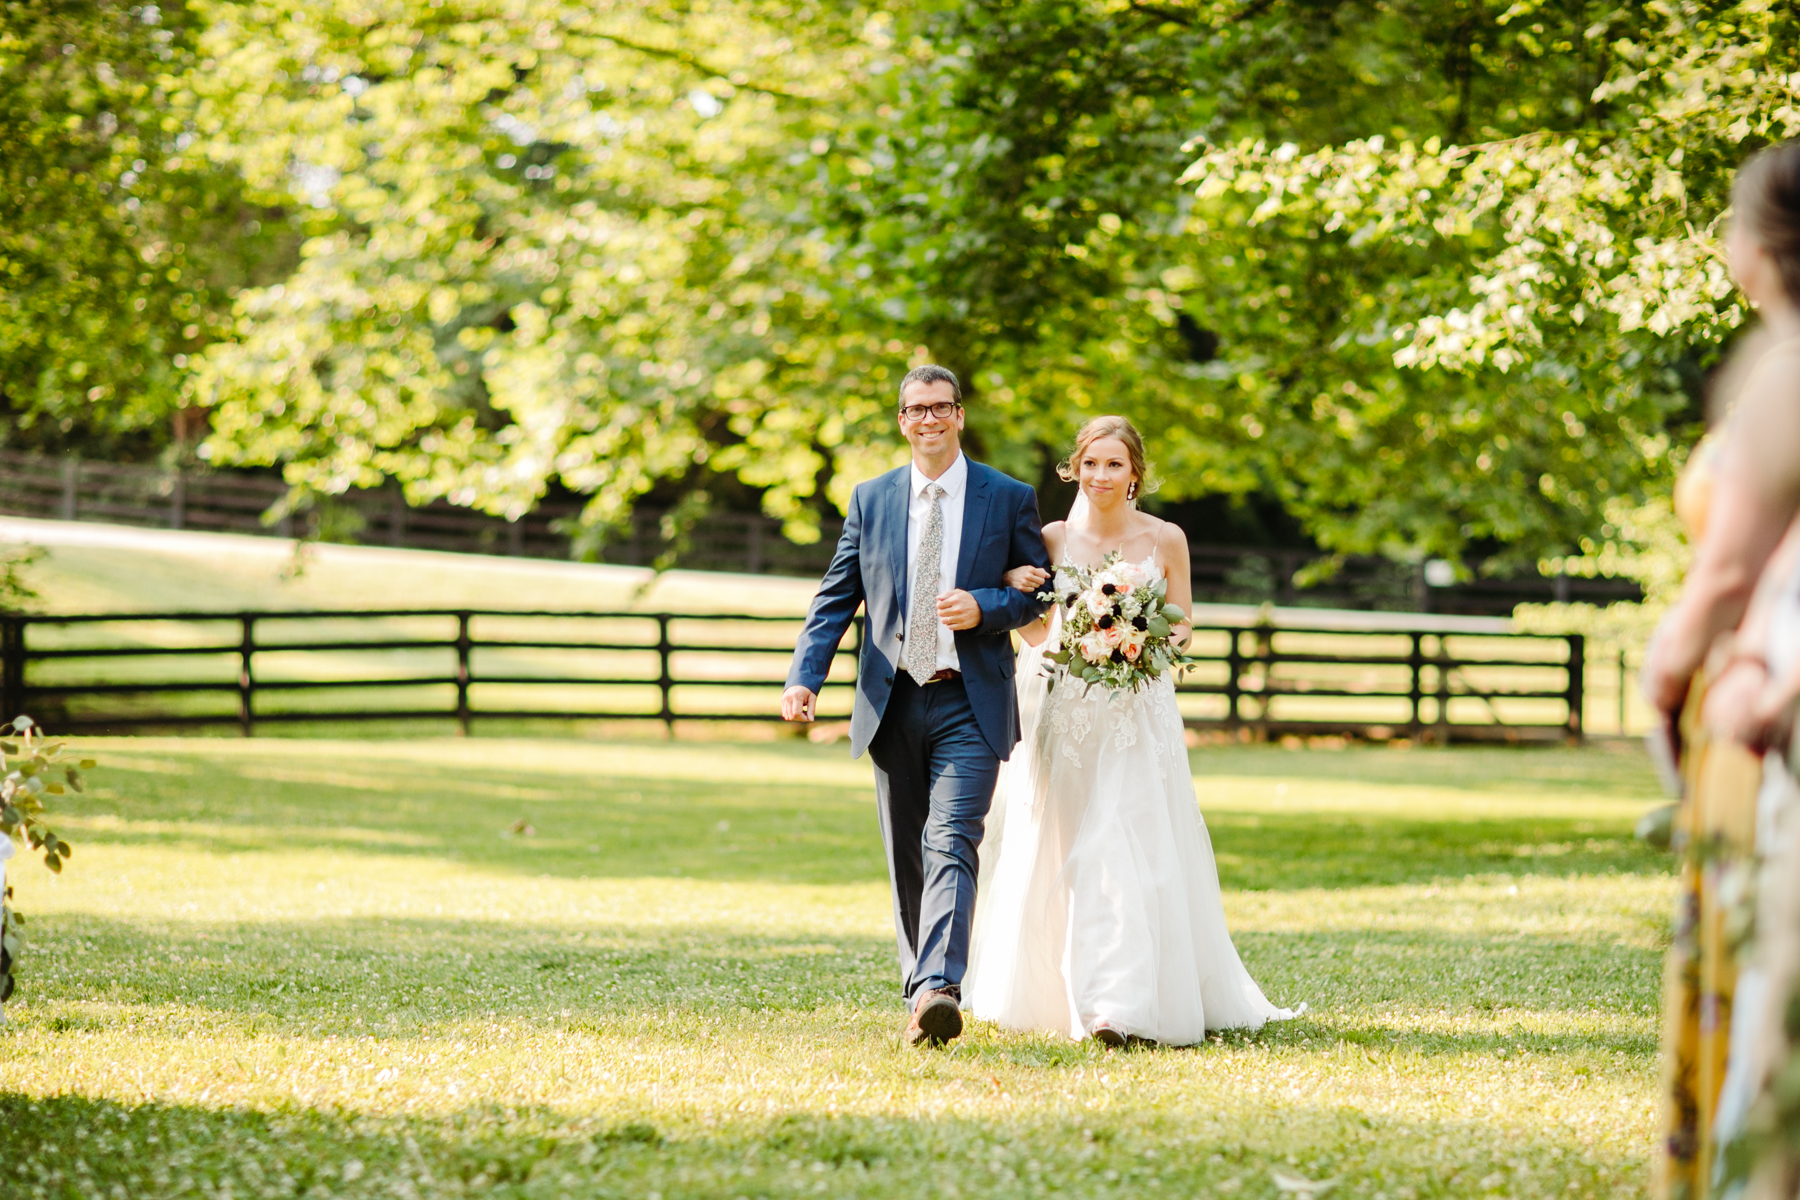 Father walking his daughter down the aisle at her stables at strawberry creek wedding in knoxville, tennessee